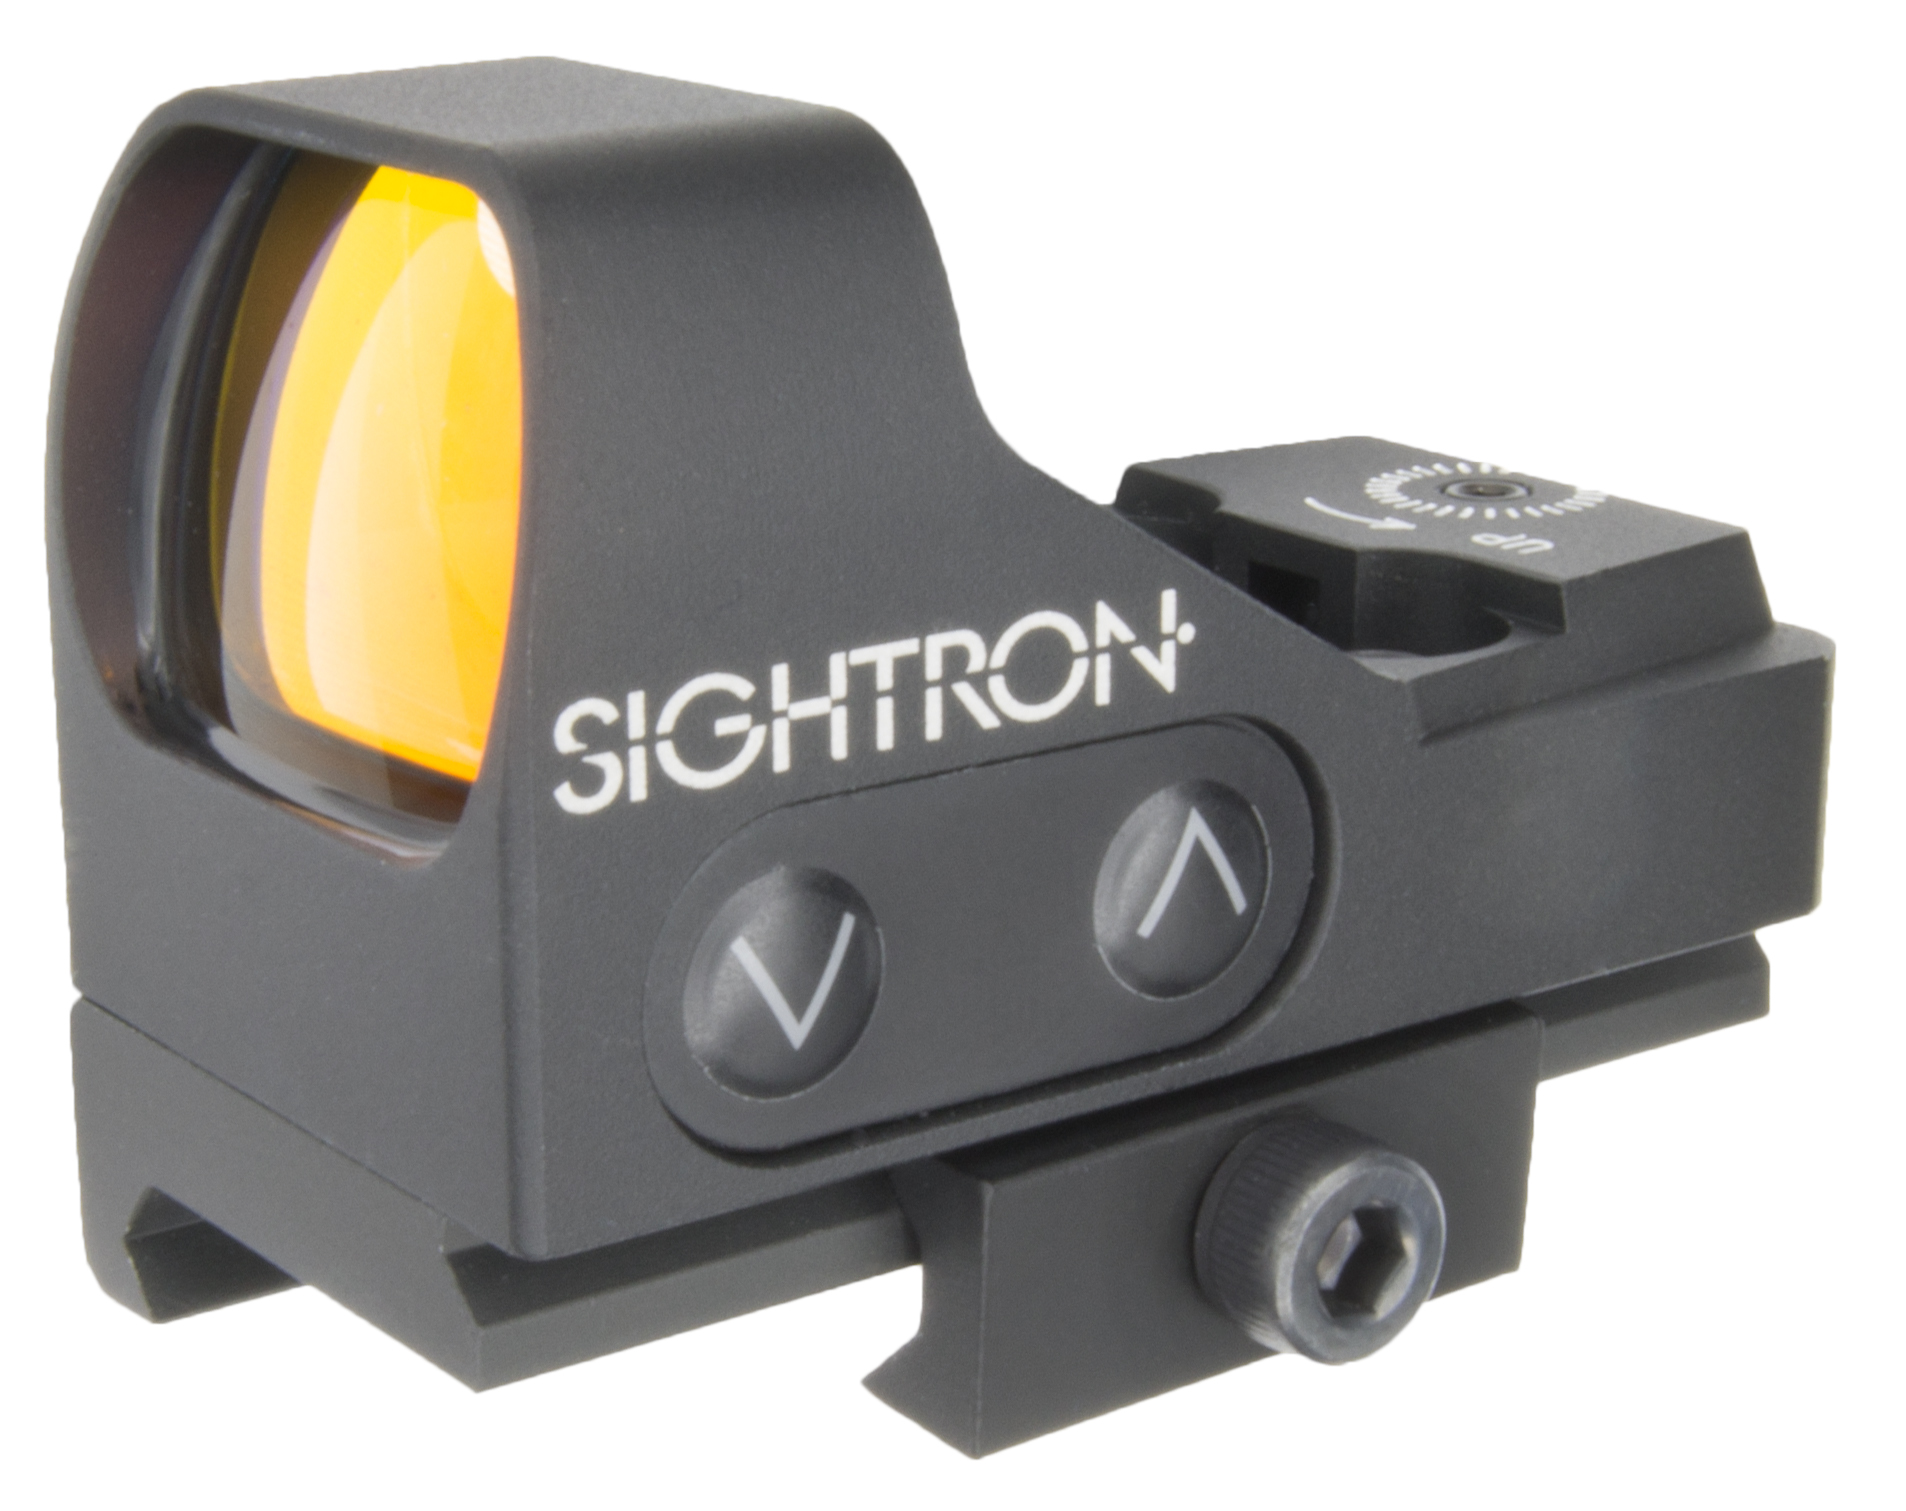 Sightron - SRS-2 6MOA Electronic Reflex Sight